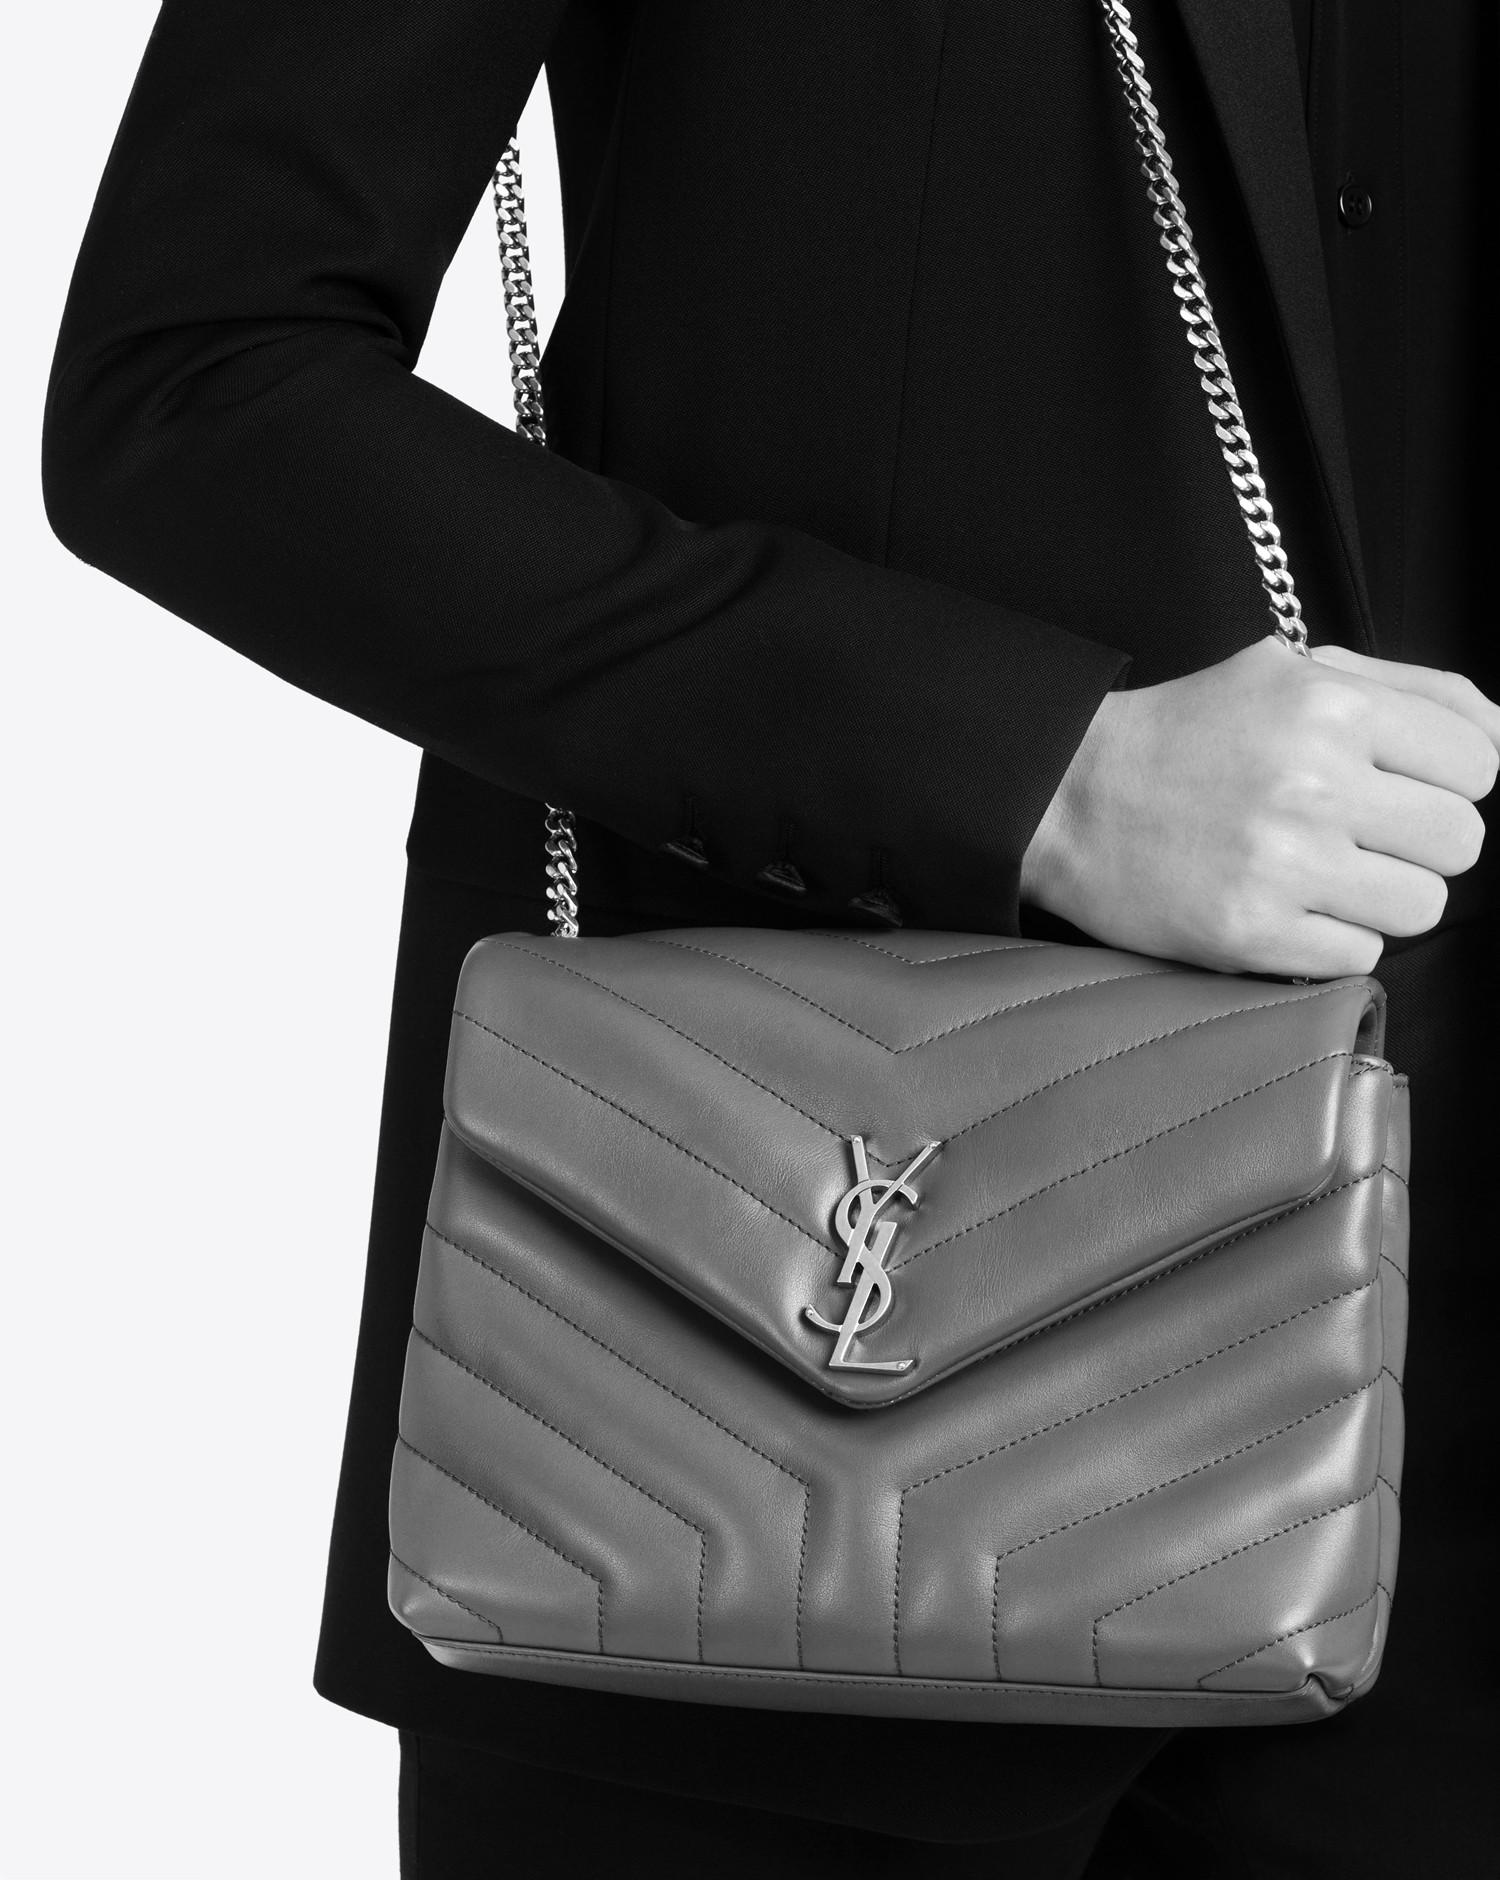 Lyst - Saint Laurent Small Loulou Chain Bag In Grey